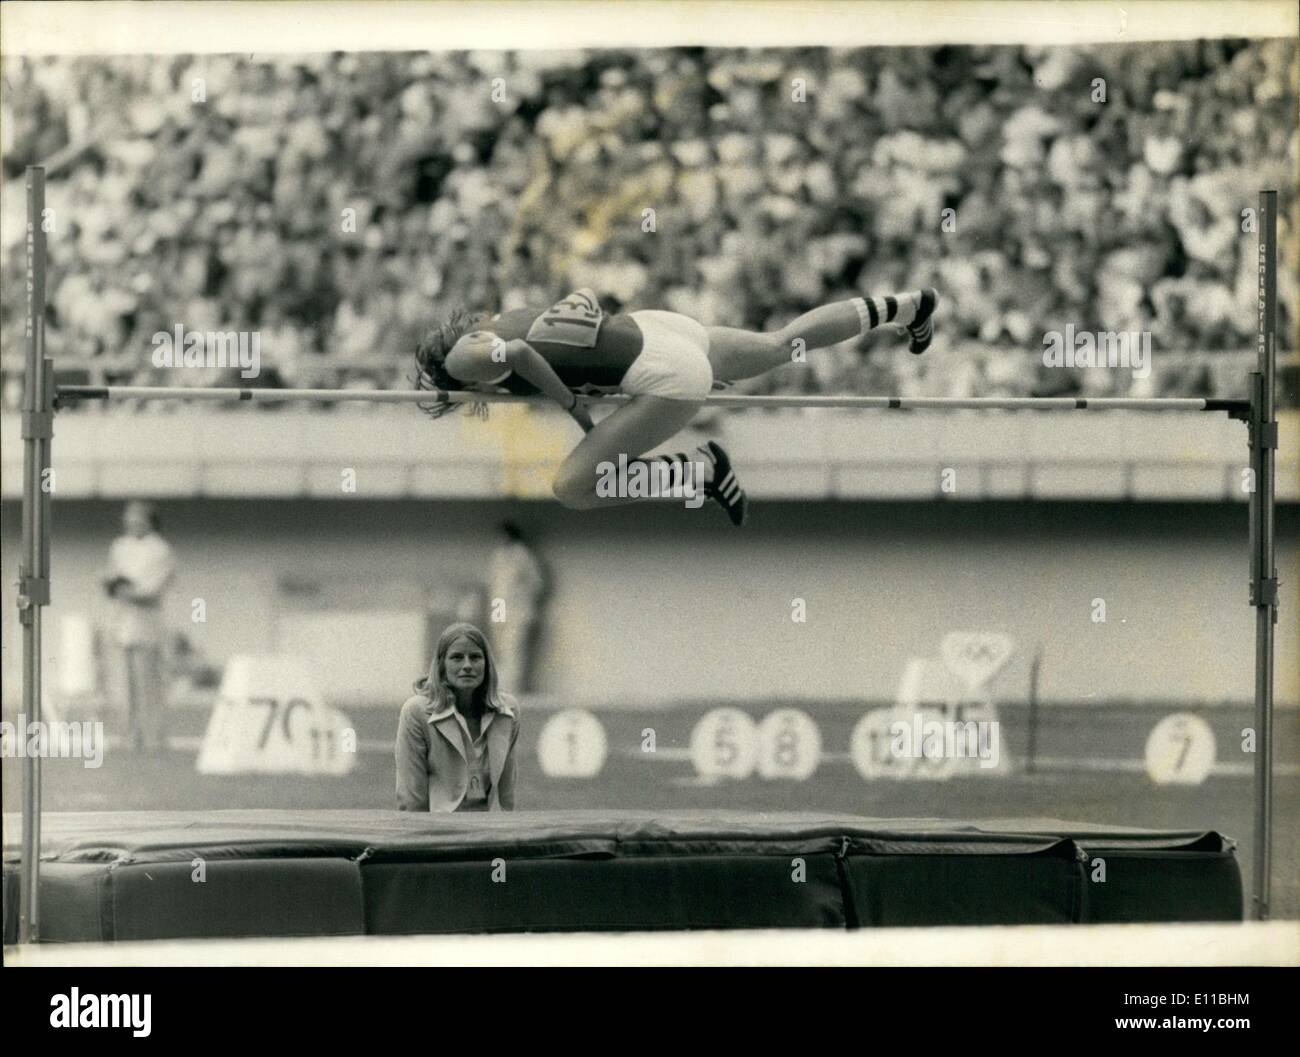 Jul. 30, 1976 - Germany's Rosemarie Ackerman Wins Gold with 1.95m High Jump - Stock Image